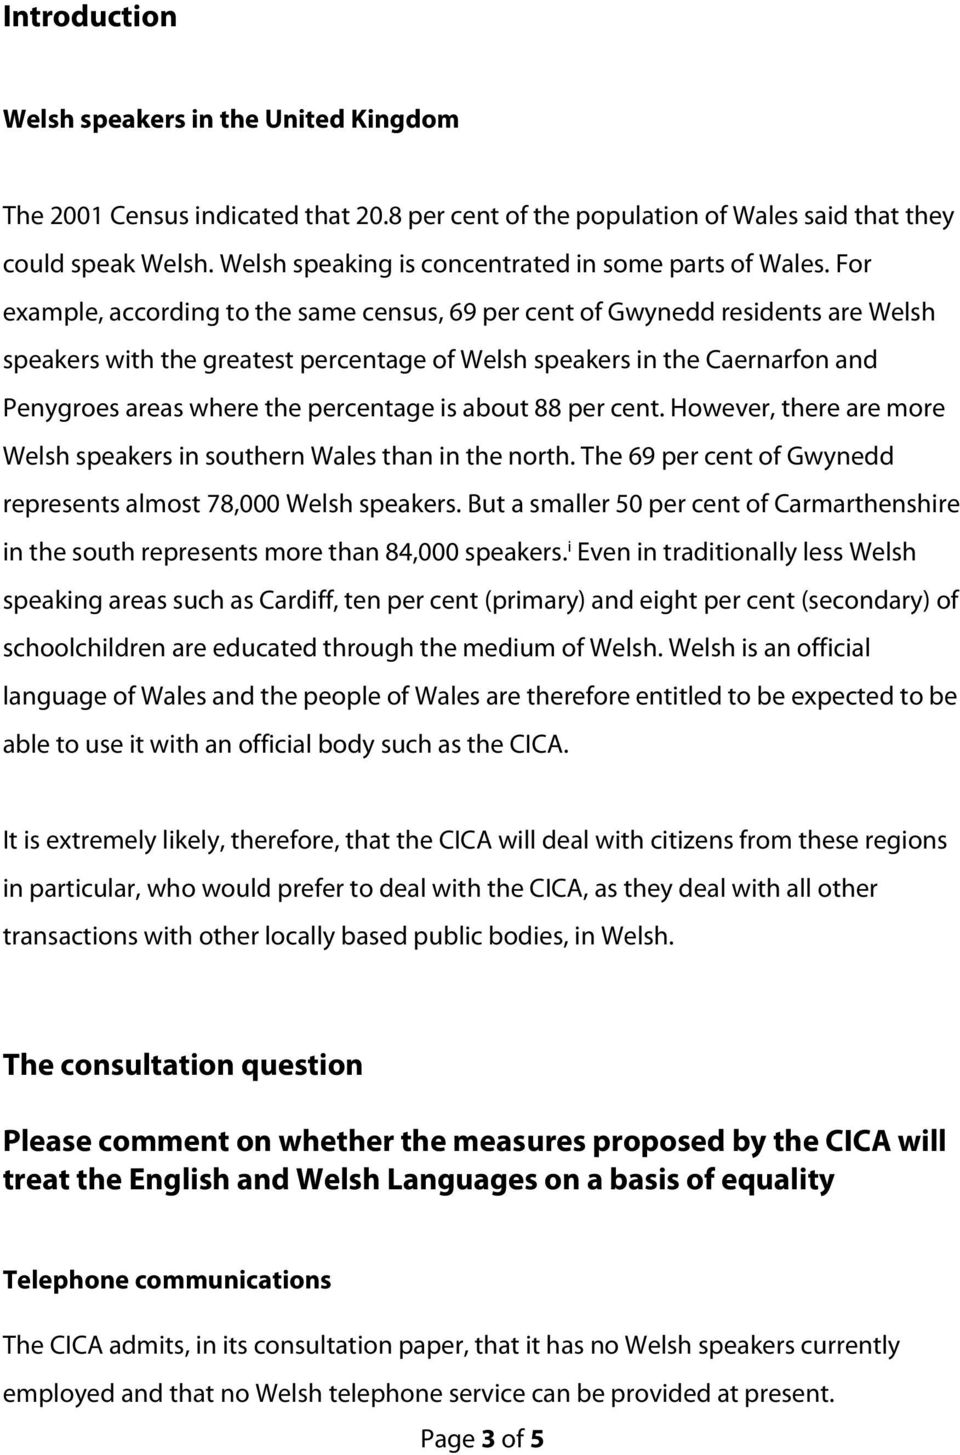 For example, according to the same census, 69 per cent of Gwynedd residents are Welsh speakers with the greatest percentage of Welsh speakers in the Caernarfon and Penygroes areas where the